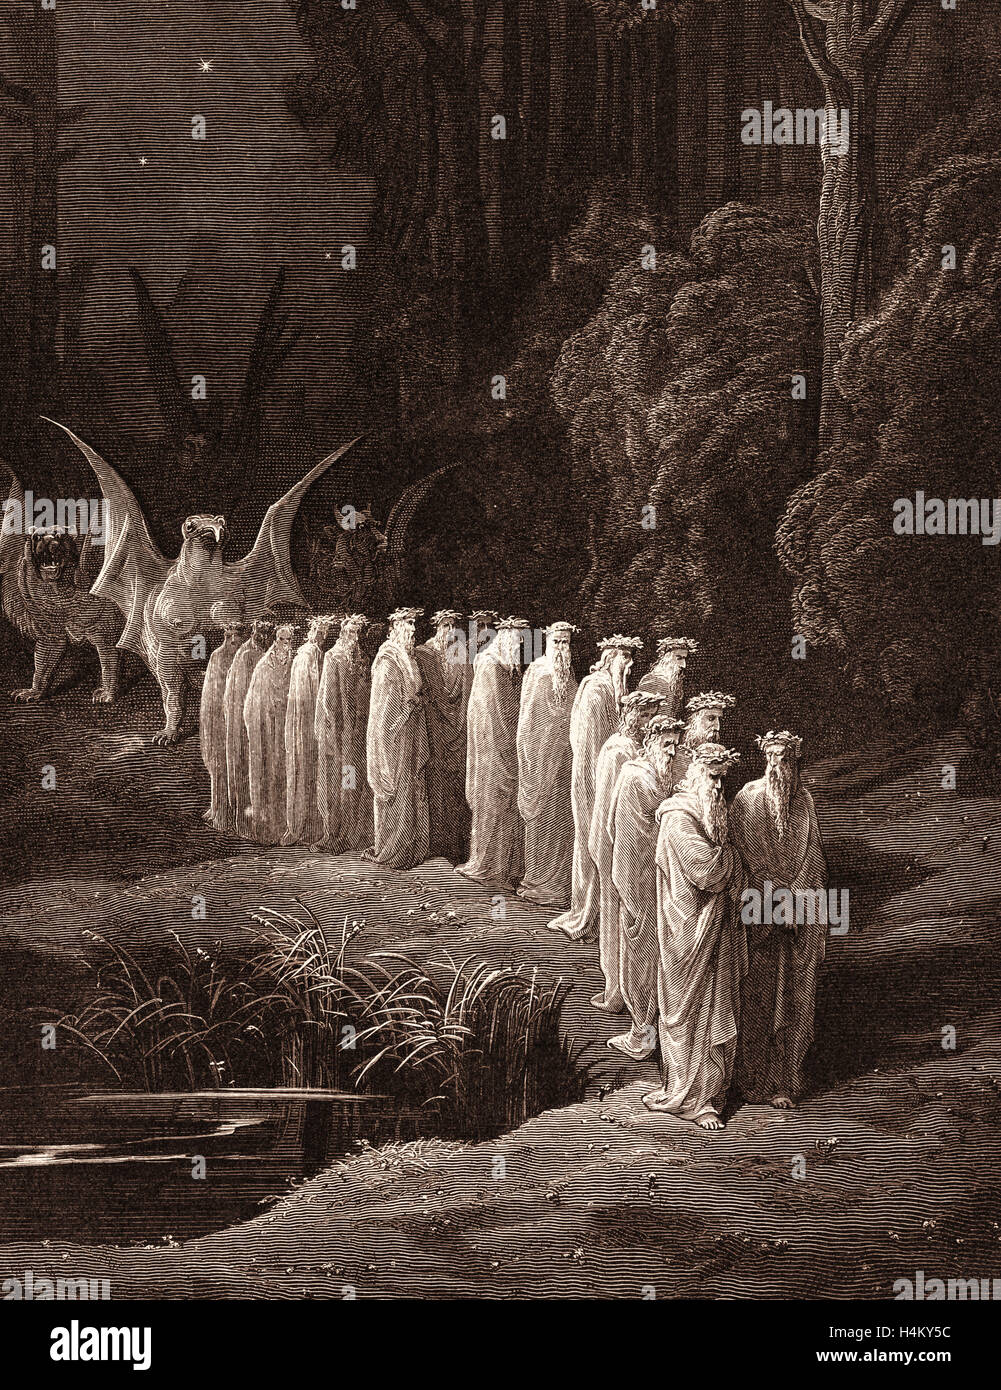 The Procession of the Elders, by Gustave Doré, 1832 - 1883, French. Engraving for the Purgatorio by Dante, - Stock Image